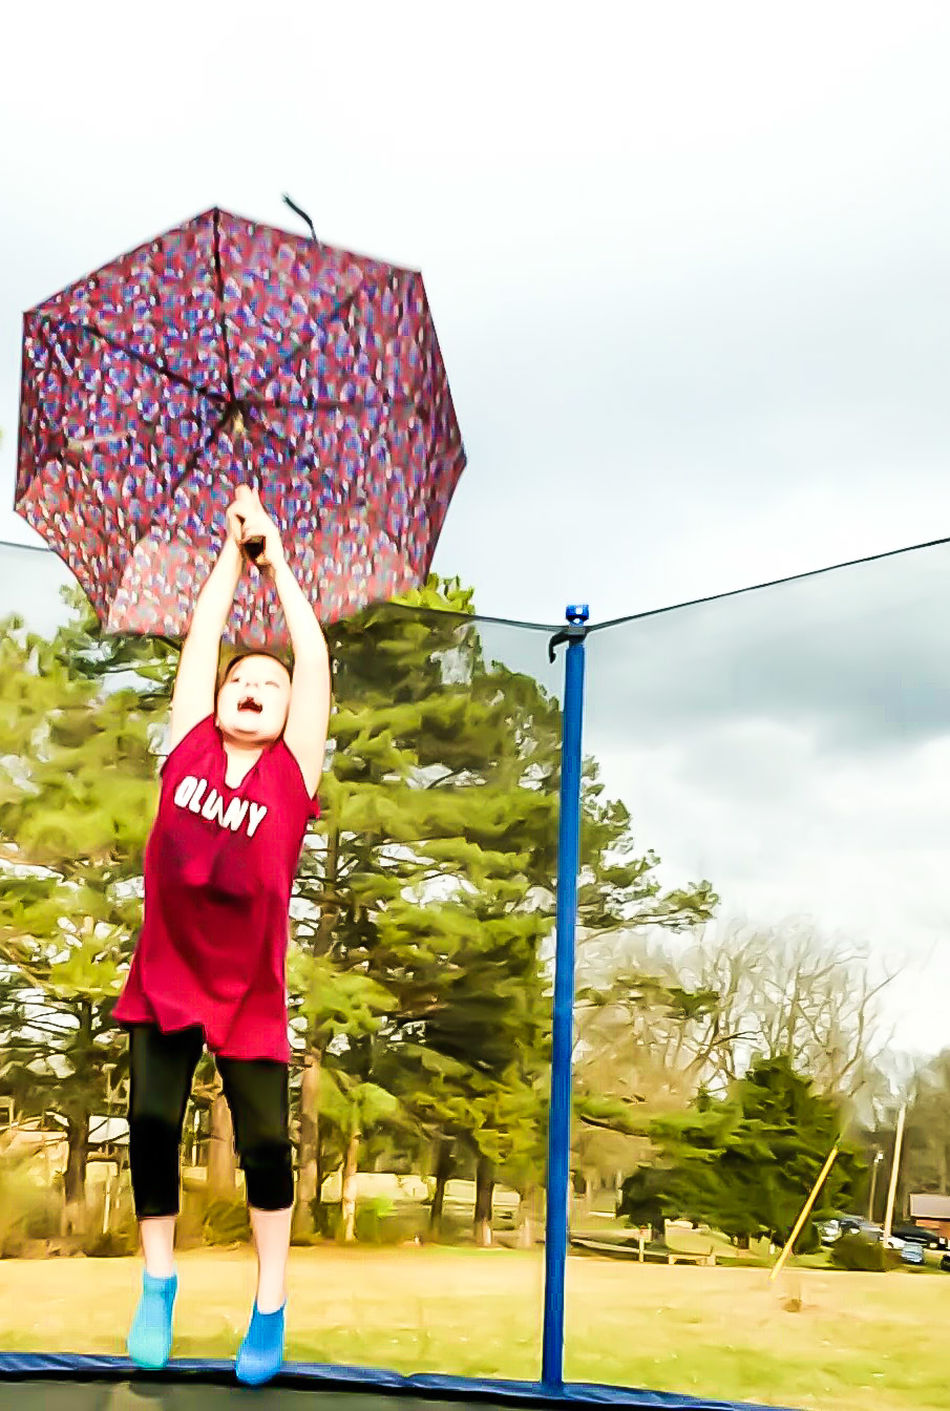 Child Activity Outdoors One Person Exercising Sport Athlete Young Adult Sports Event  Taking A Shot - Sport Action Showing Motion Motion Motion Shot Outdoor Activity Floating On Air Learning To Fly Trampoline Umbrella Funny Kid Funny Moment Childhood Facial Expression